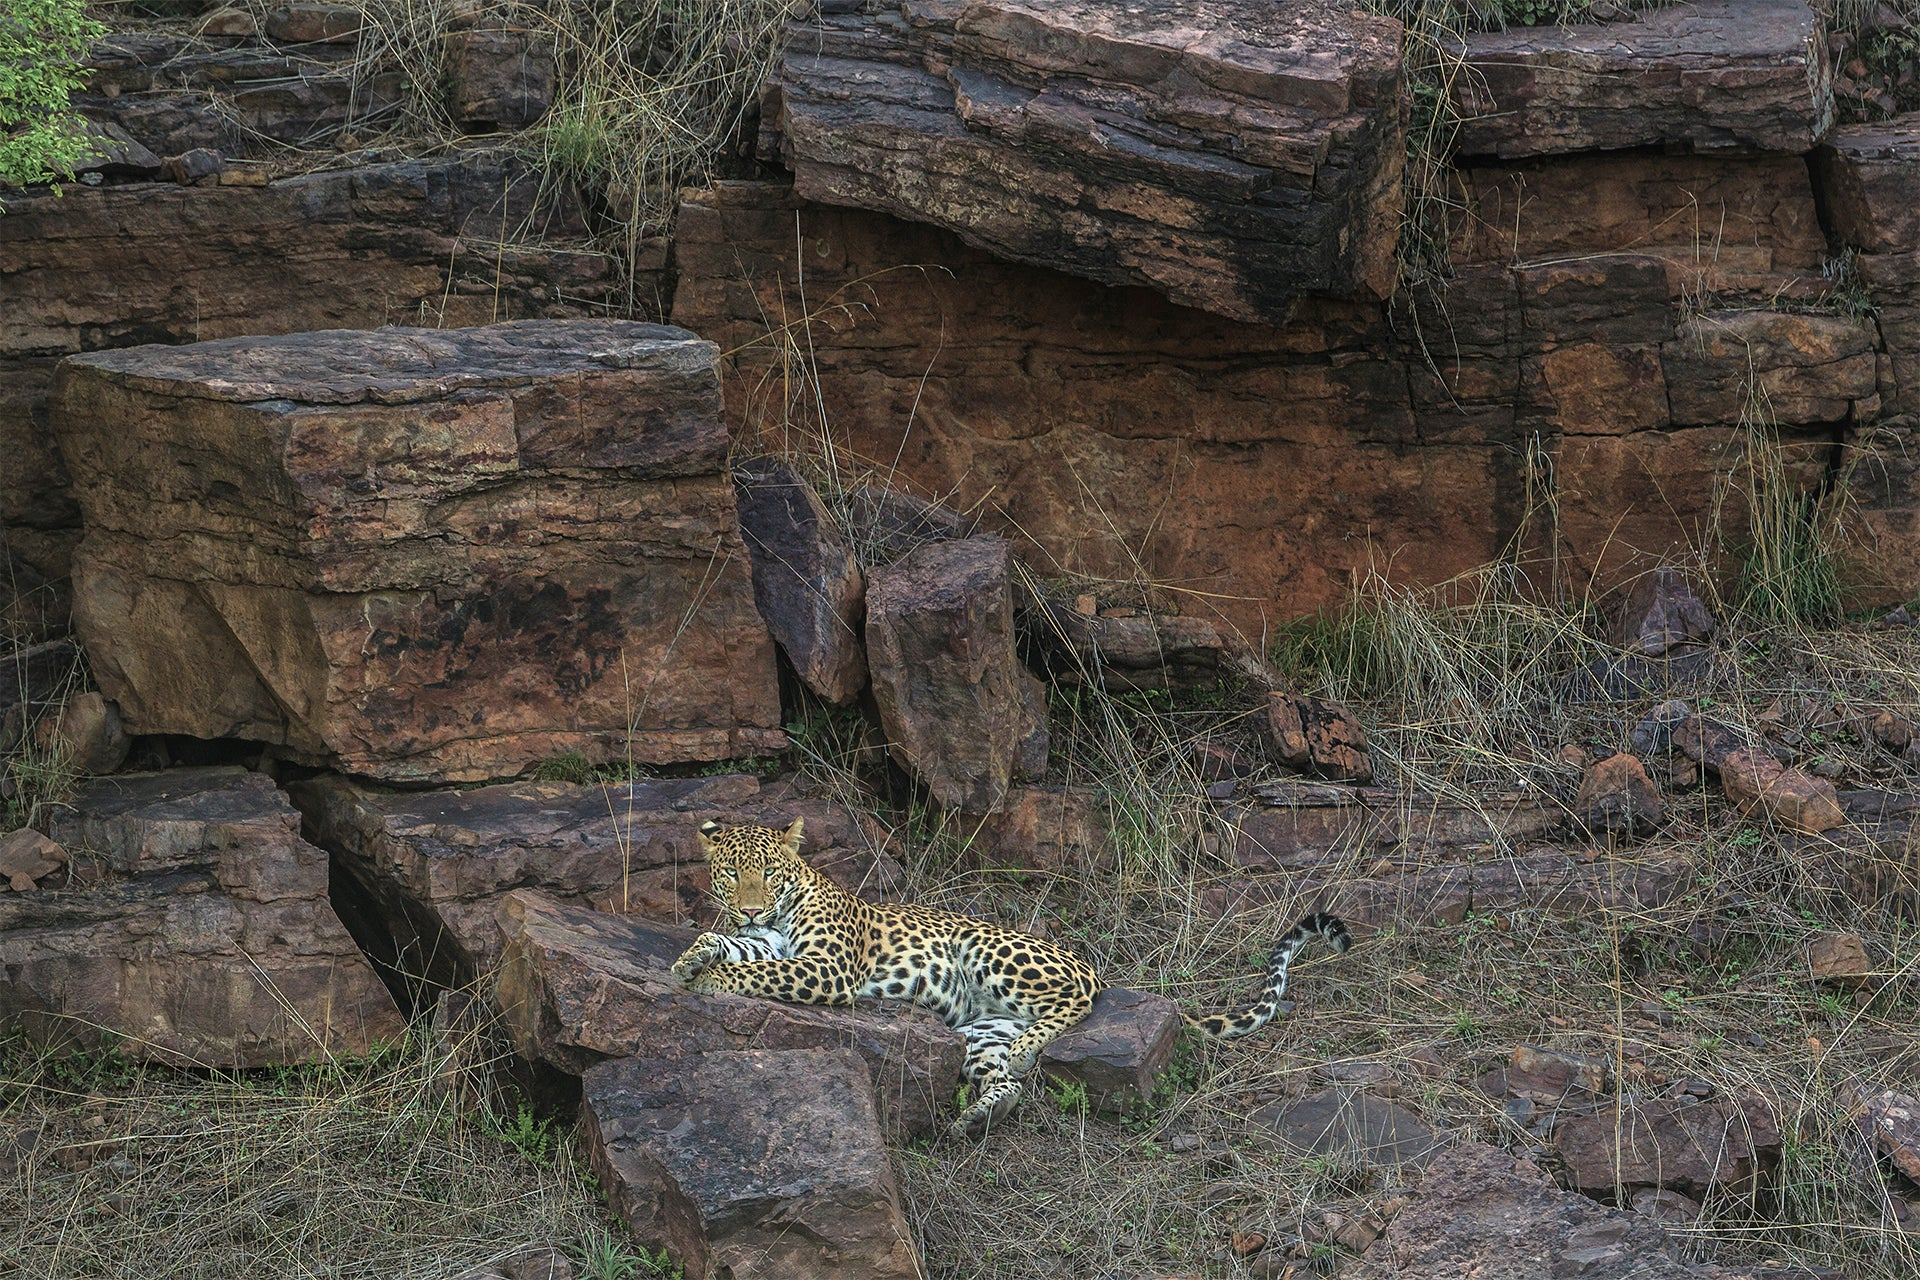 Leopard_on_the_rocks